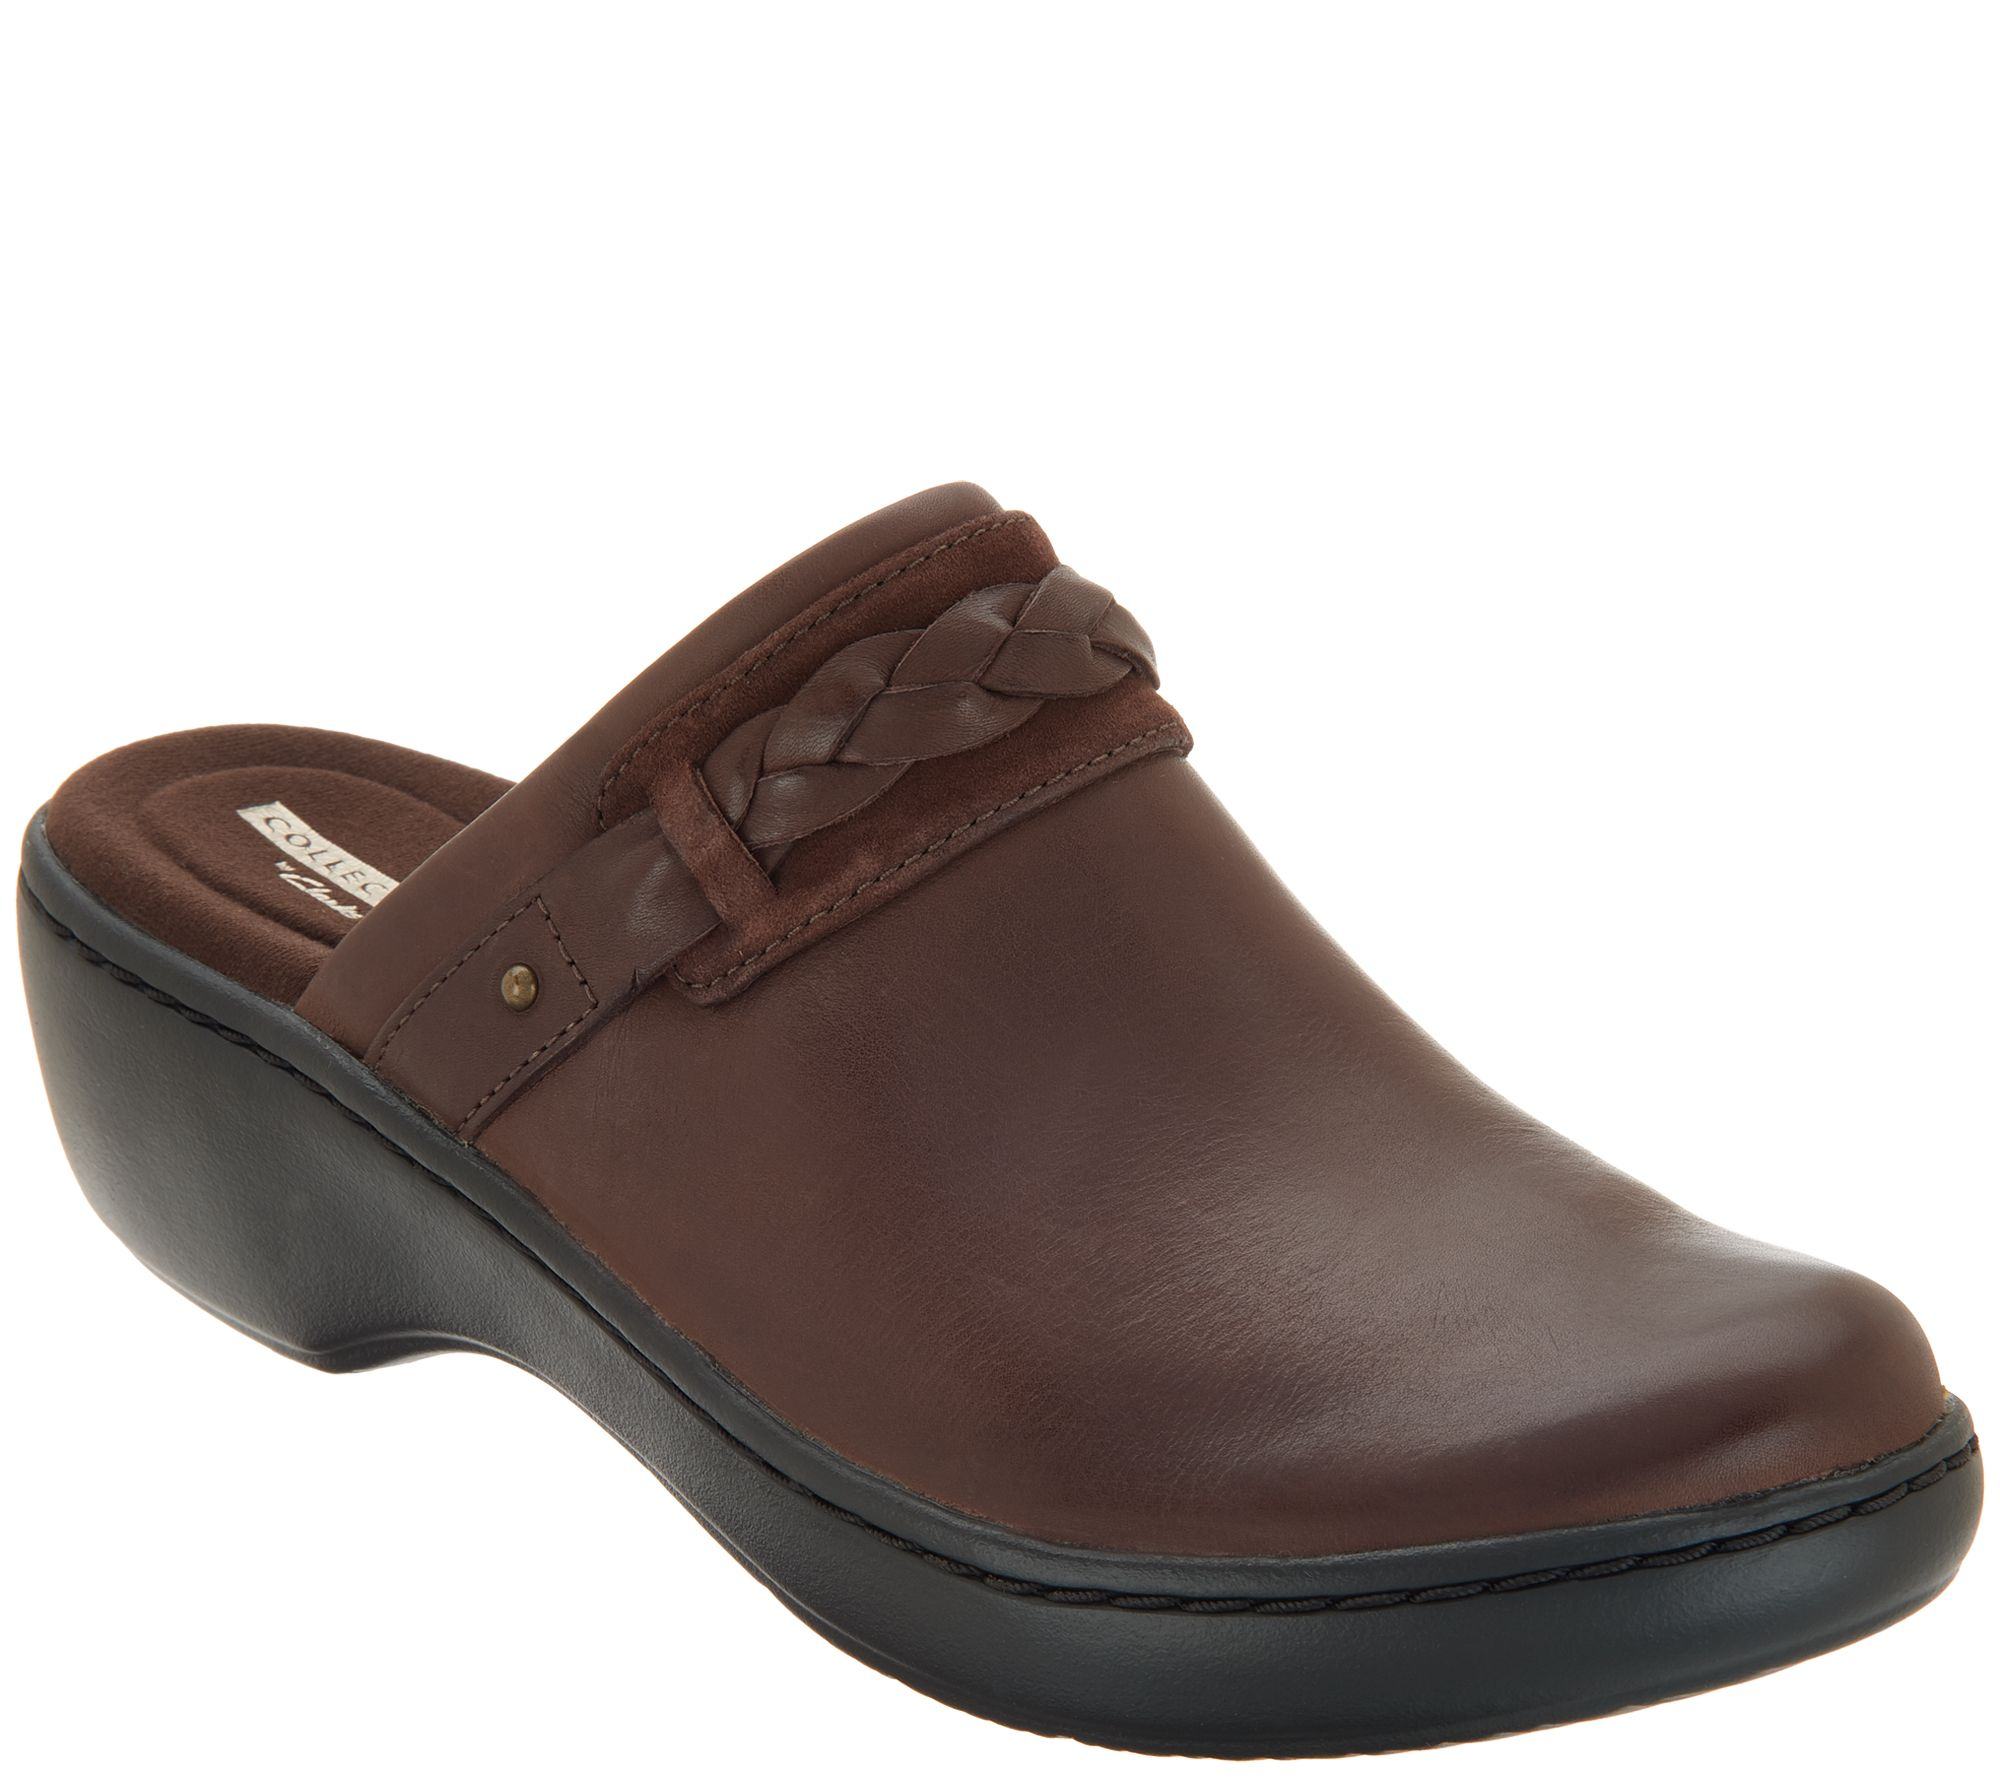 cdc6df441a863 Clarks Collection Leather Slip-on Clogs - Delana Abbey — QVC.com